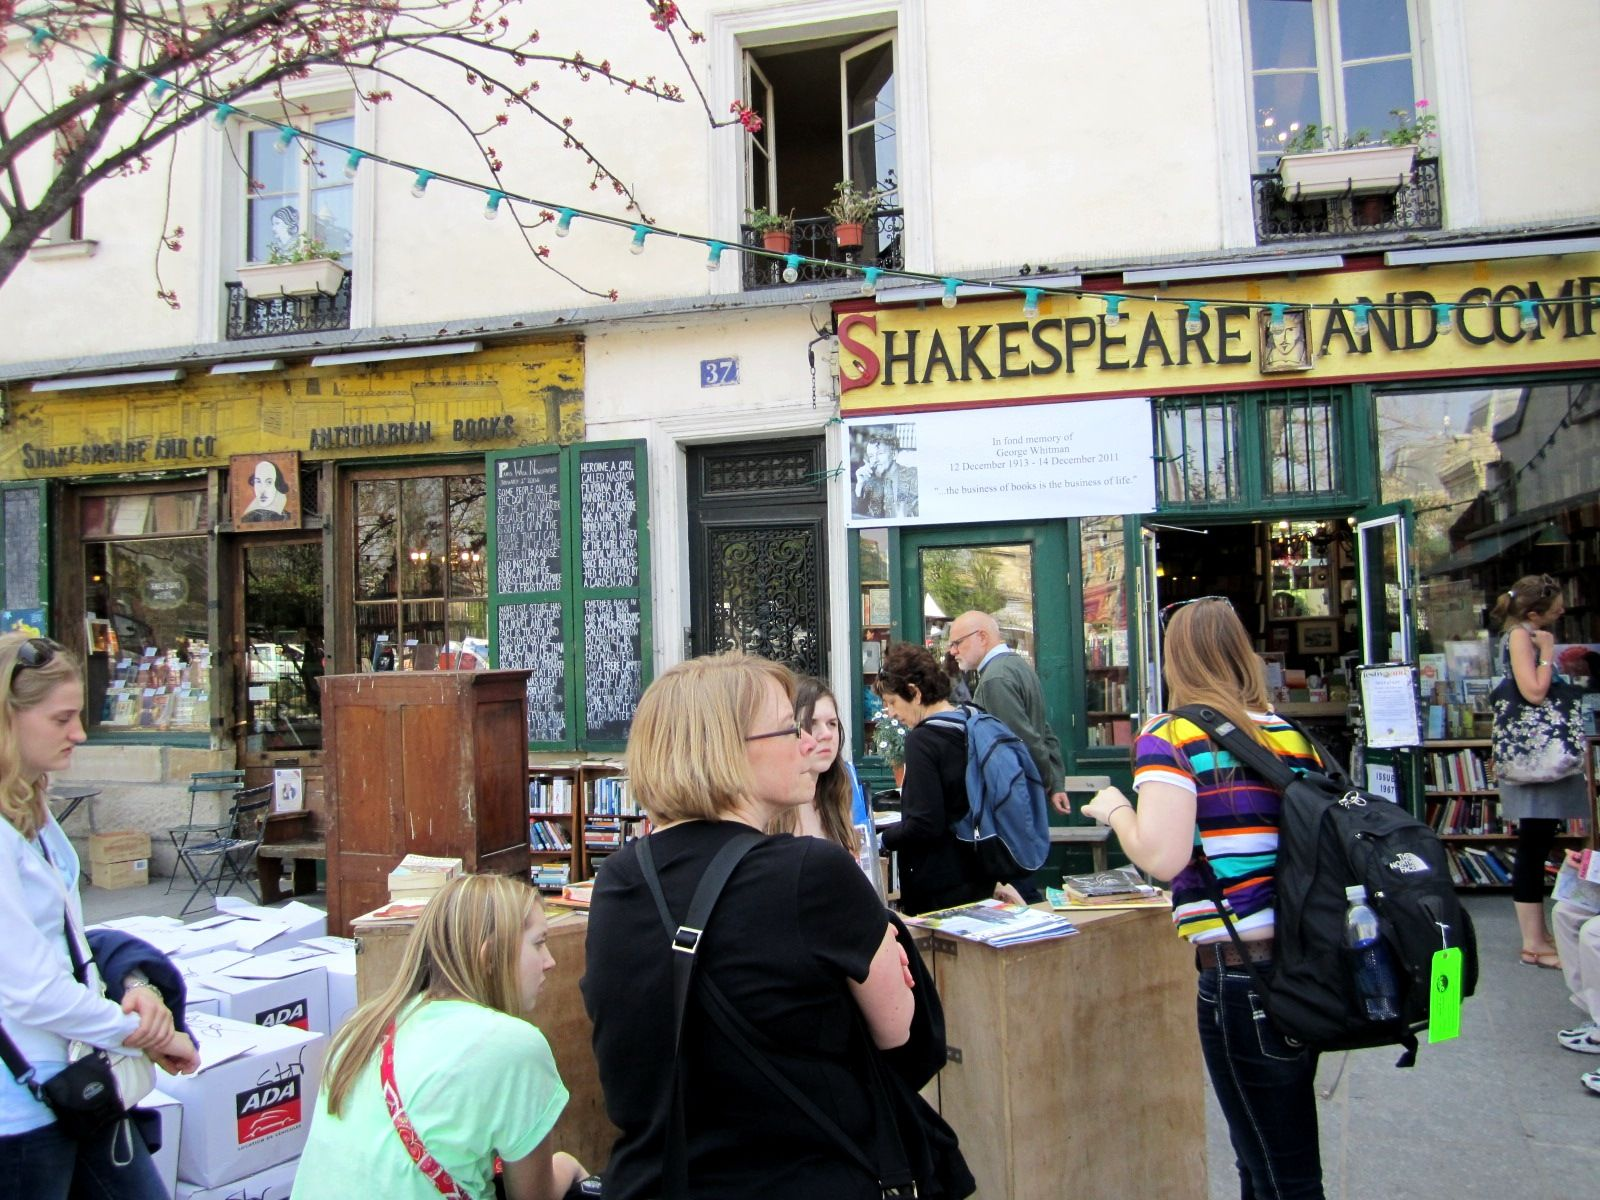 The famous bookstore in Paris http://wordsandpeace.files.wordpress.com/2012/05/shakespeare-and-company-1.jpg